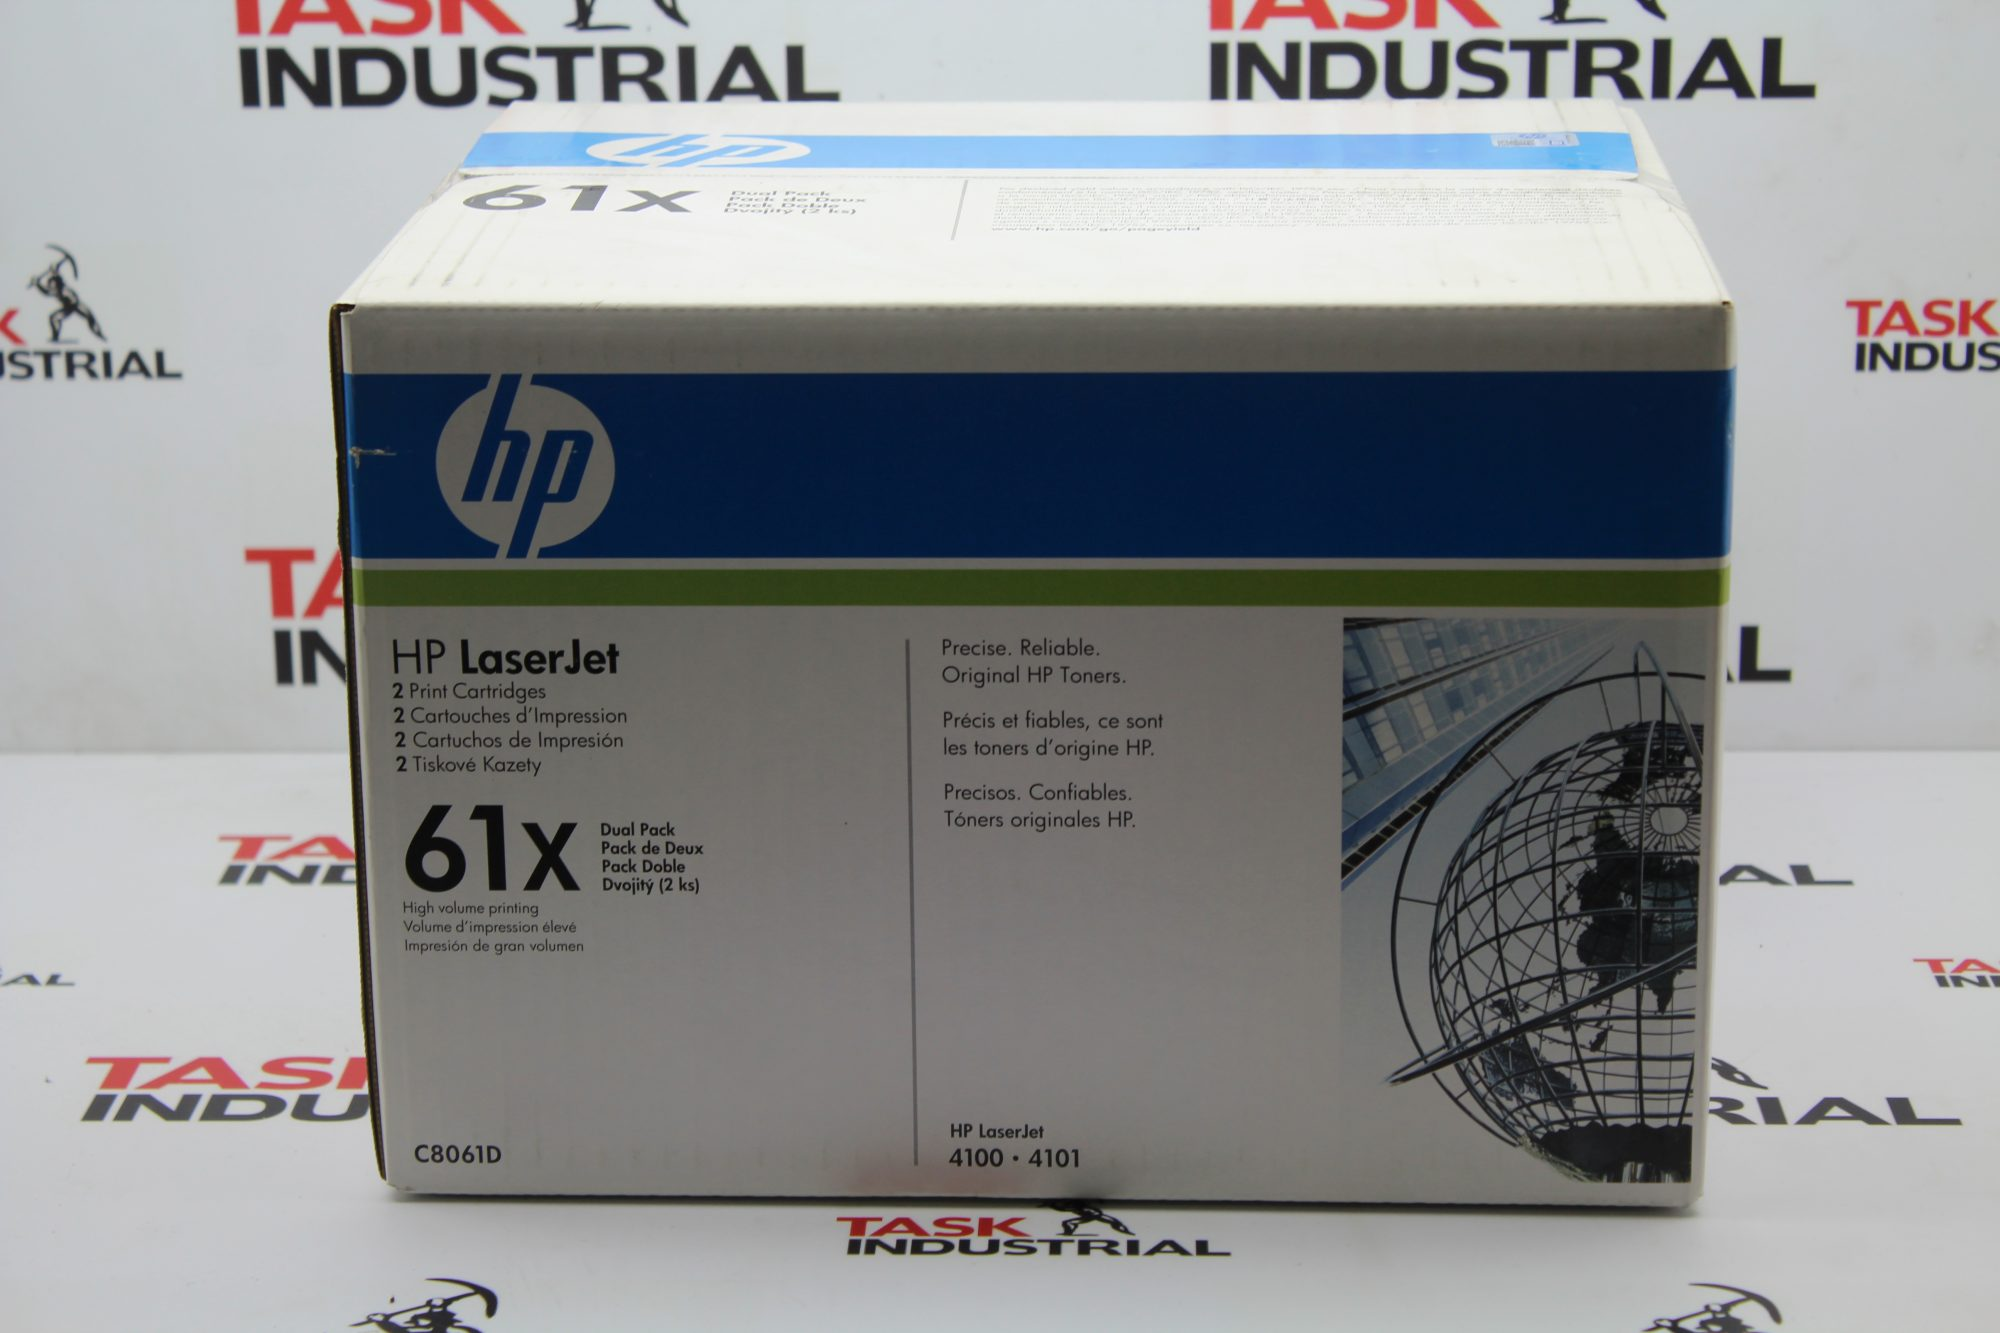 HP Laserjet 61x 2 Print Cartridge Dual Pack